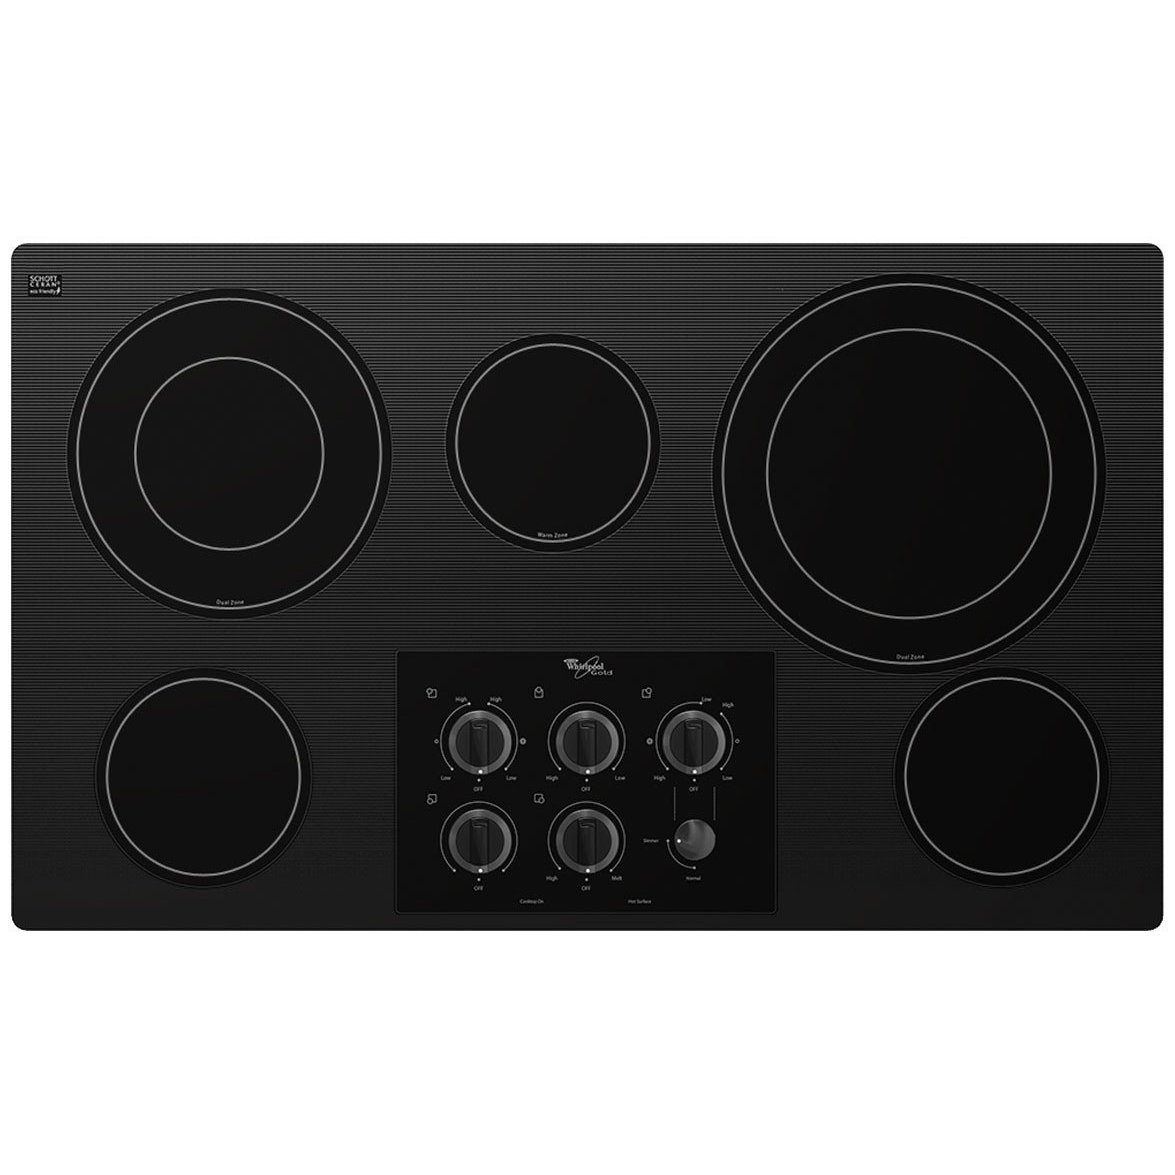 Whirlpool G7CE3635XB Glass Cooktop Review